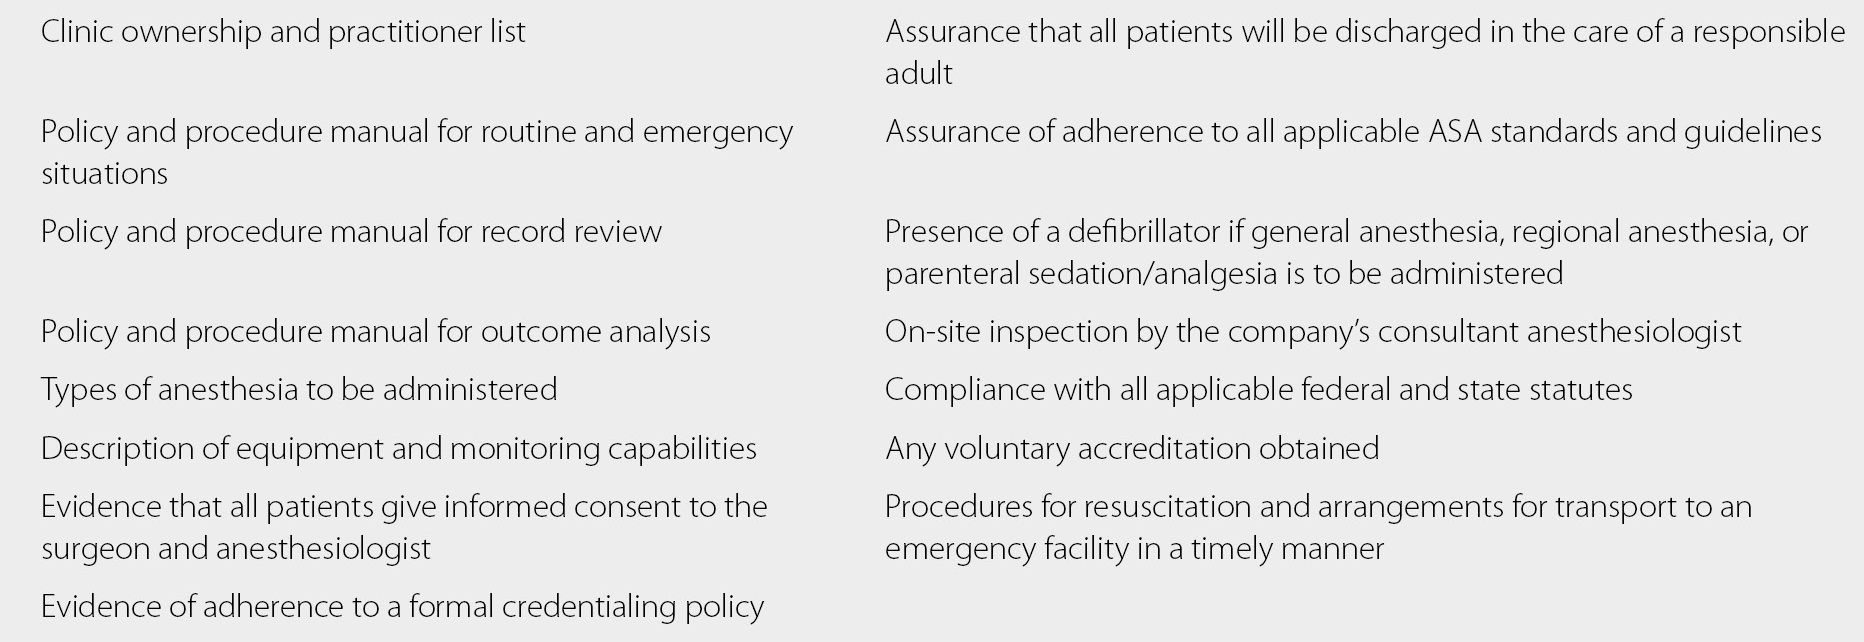 Surgical and Anesthesia Practice Management (Section 3